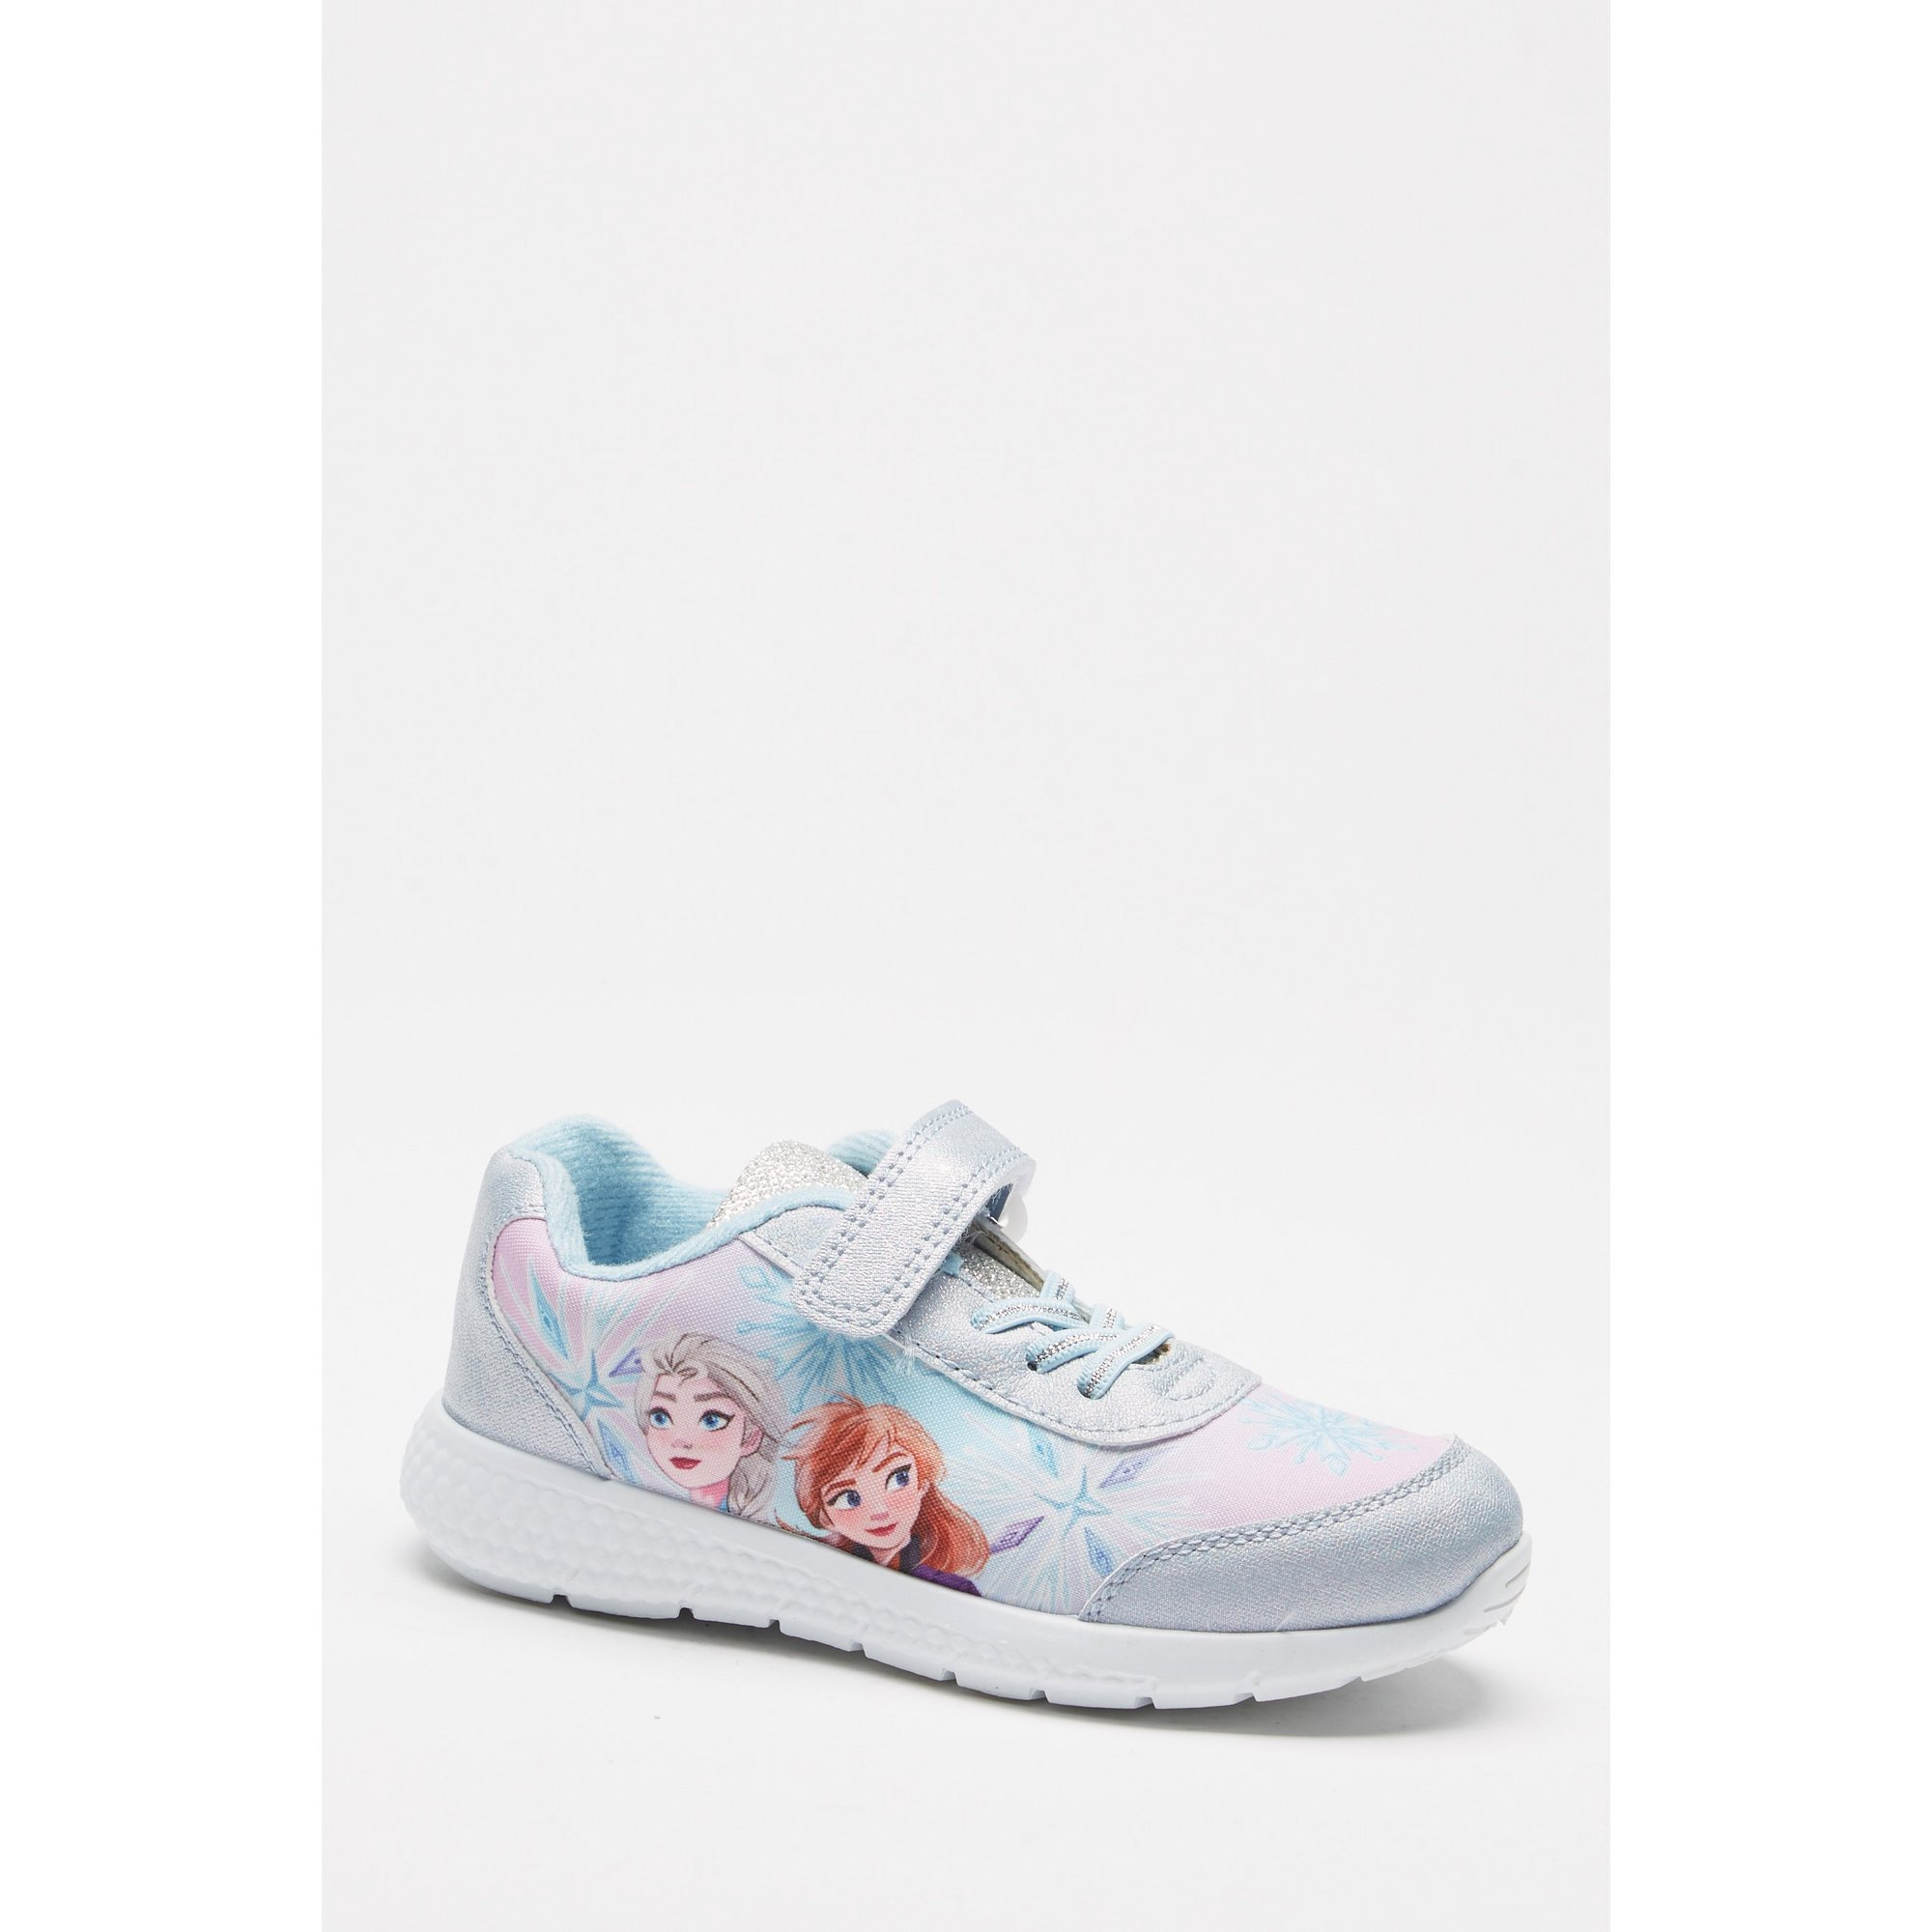 Image of Frozen Mara Trainers